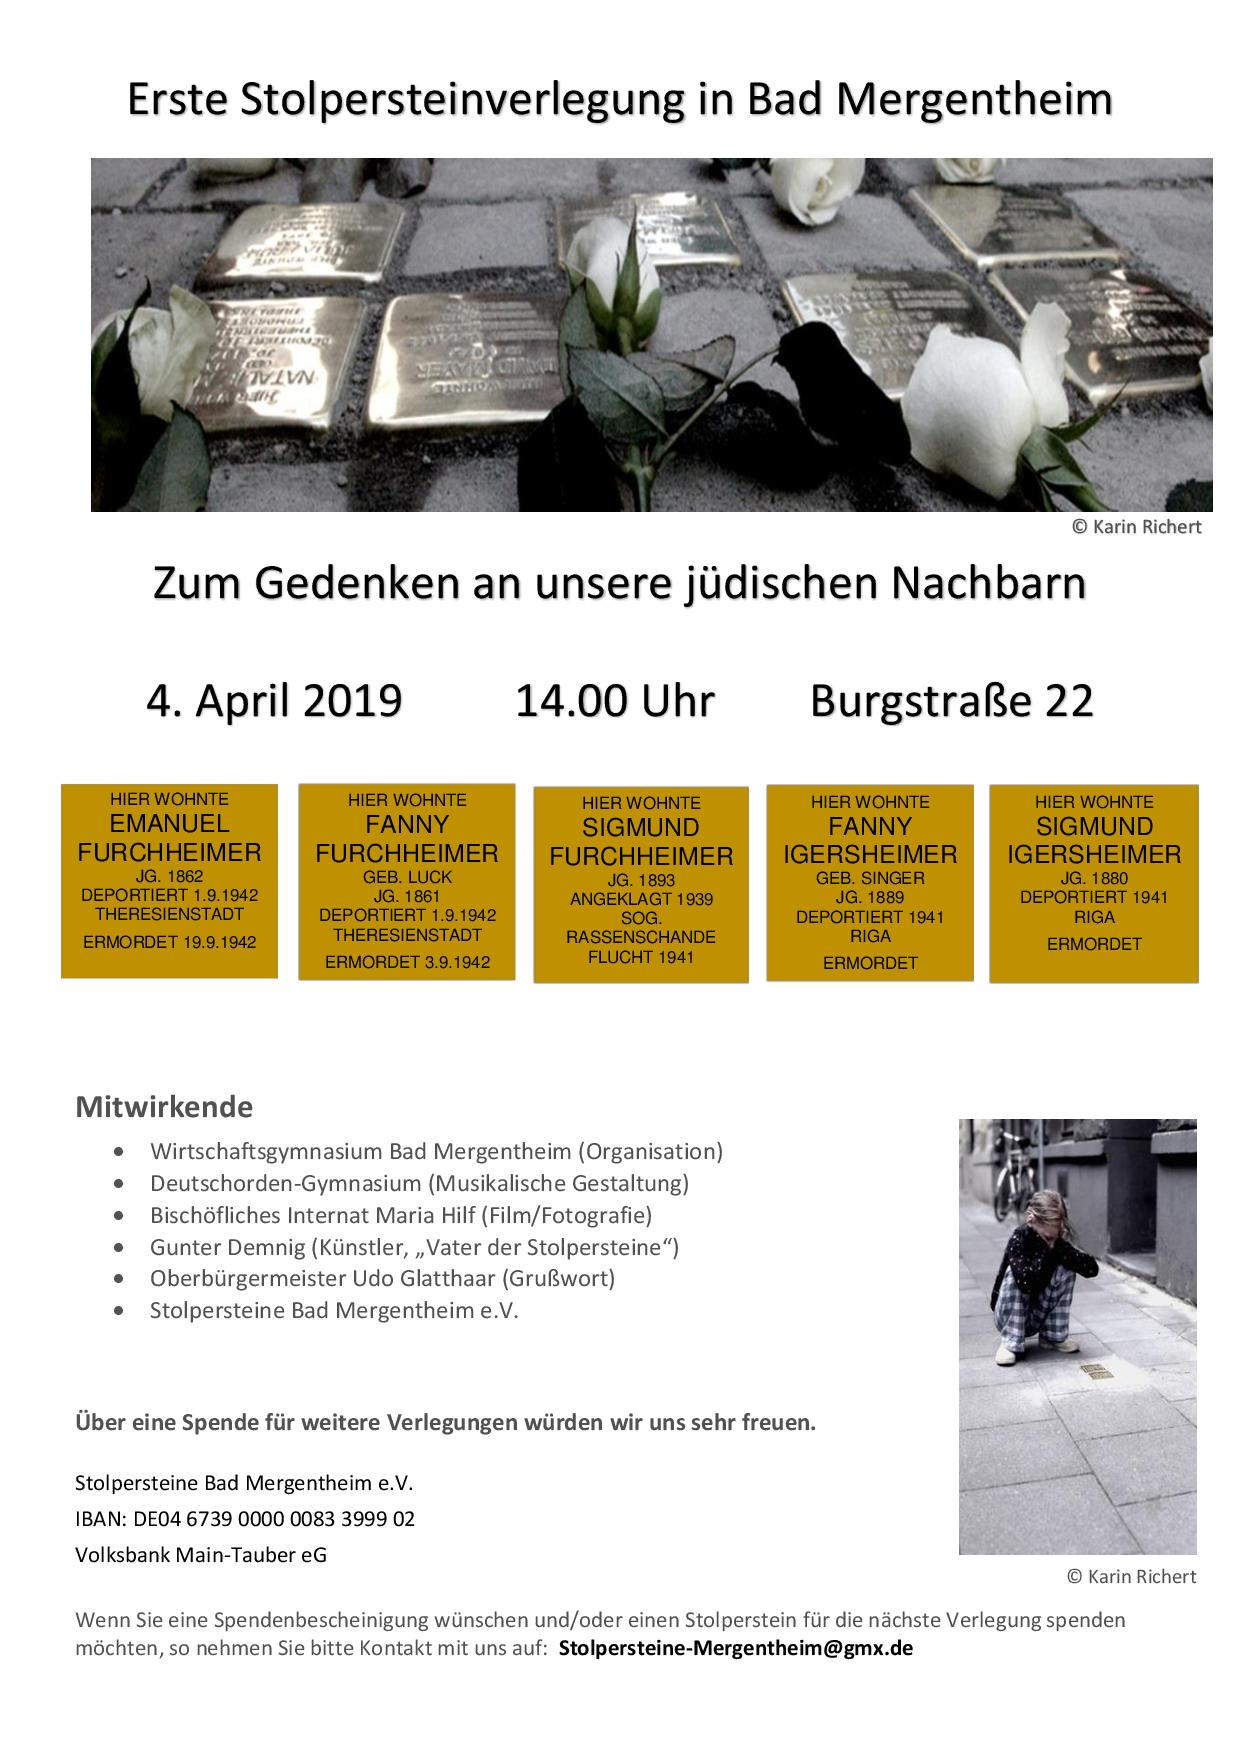 Erste Stolpersteinverlegung in Bad Mergentheim